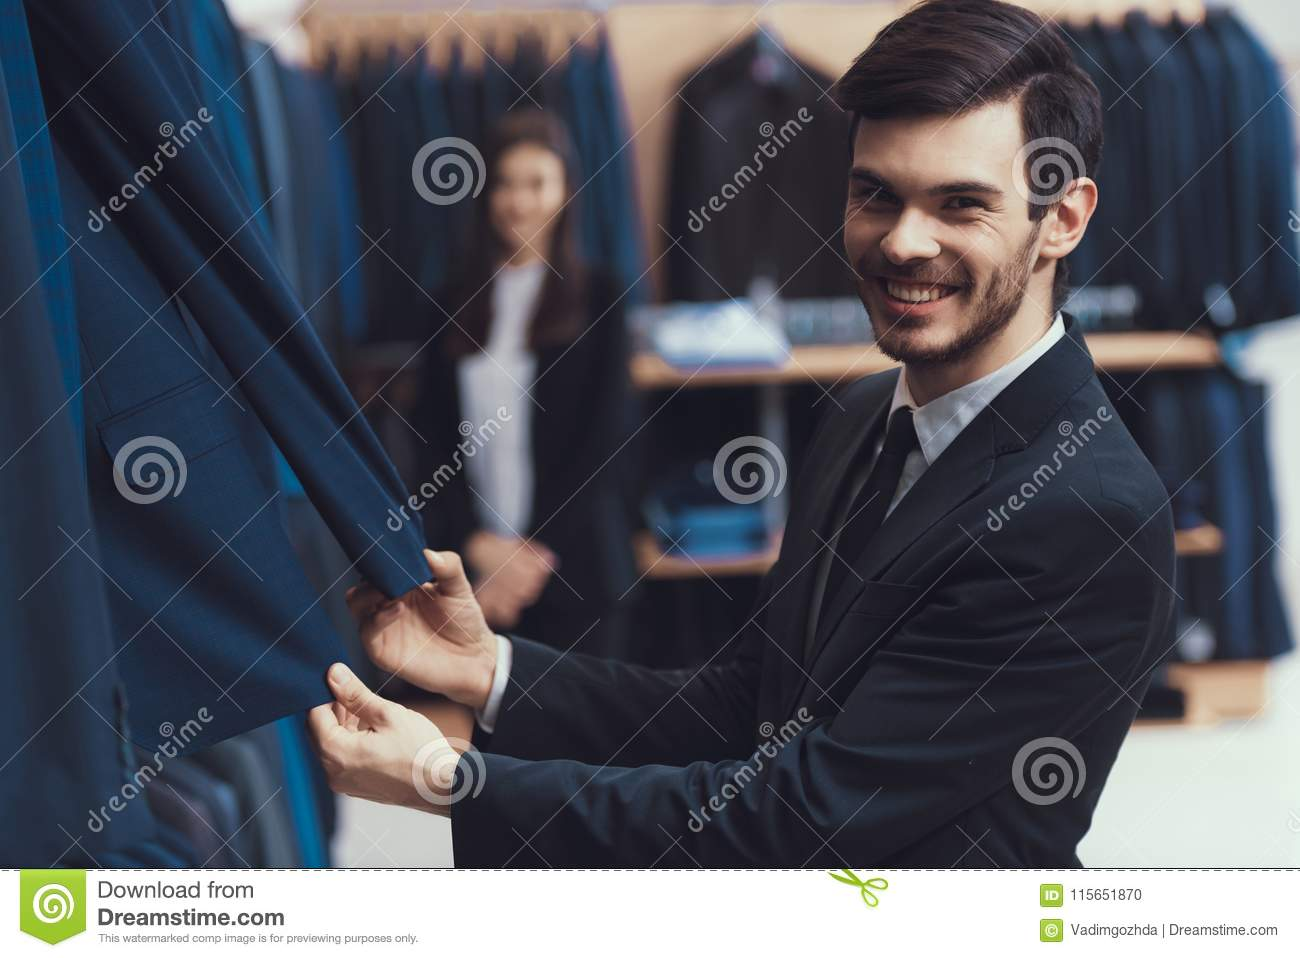 f1aec490 Smiling successful young man checks quality of jacket fabric in mens  clothing store.